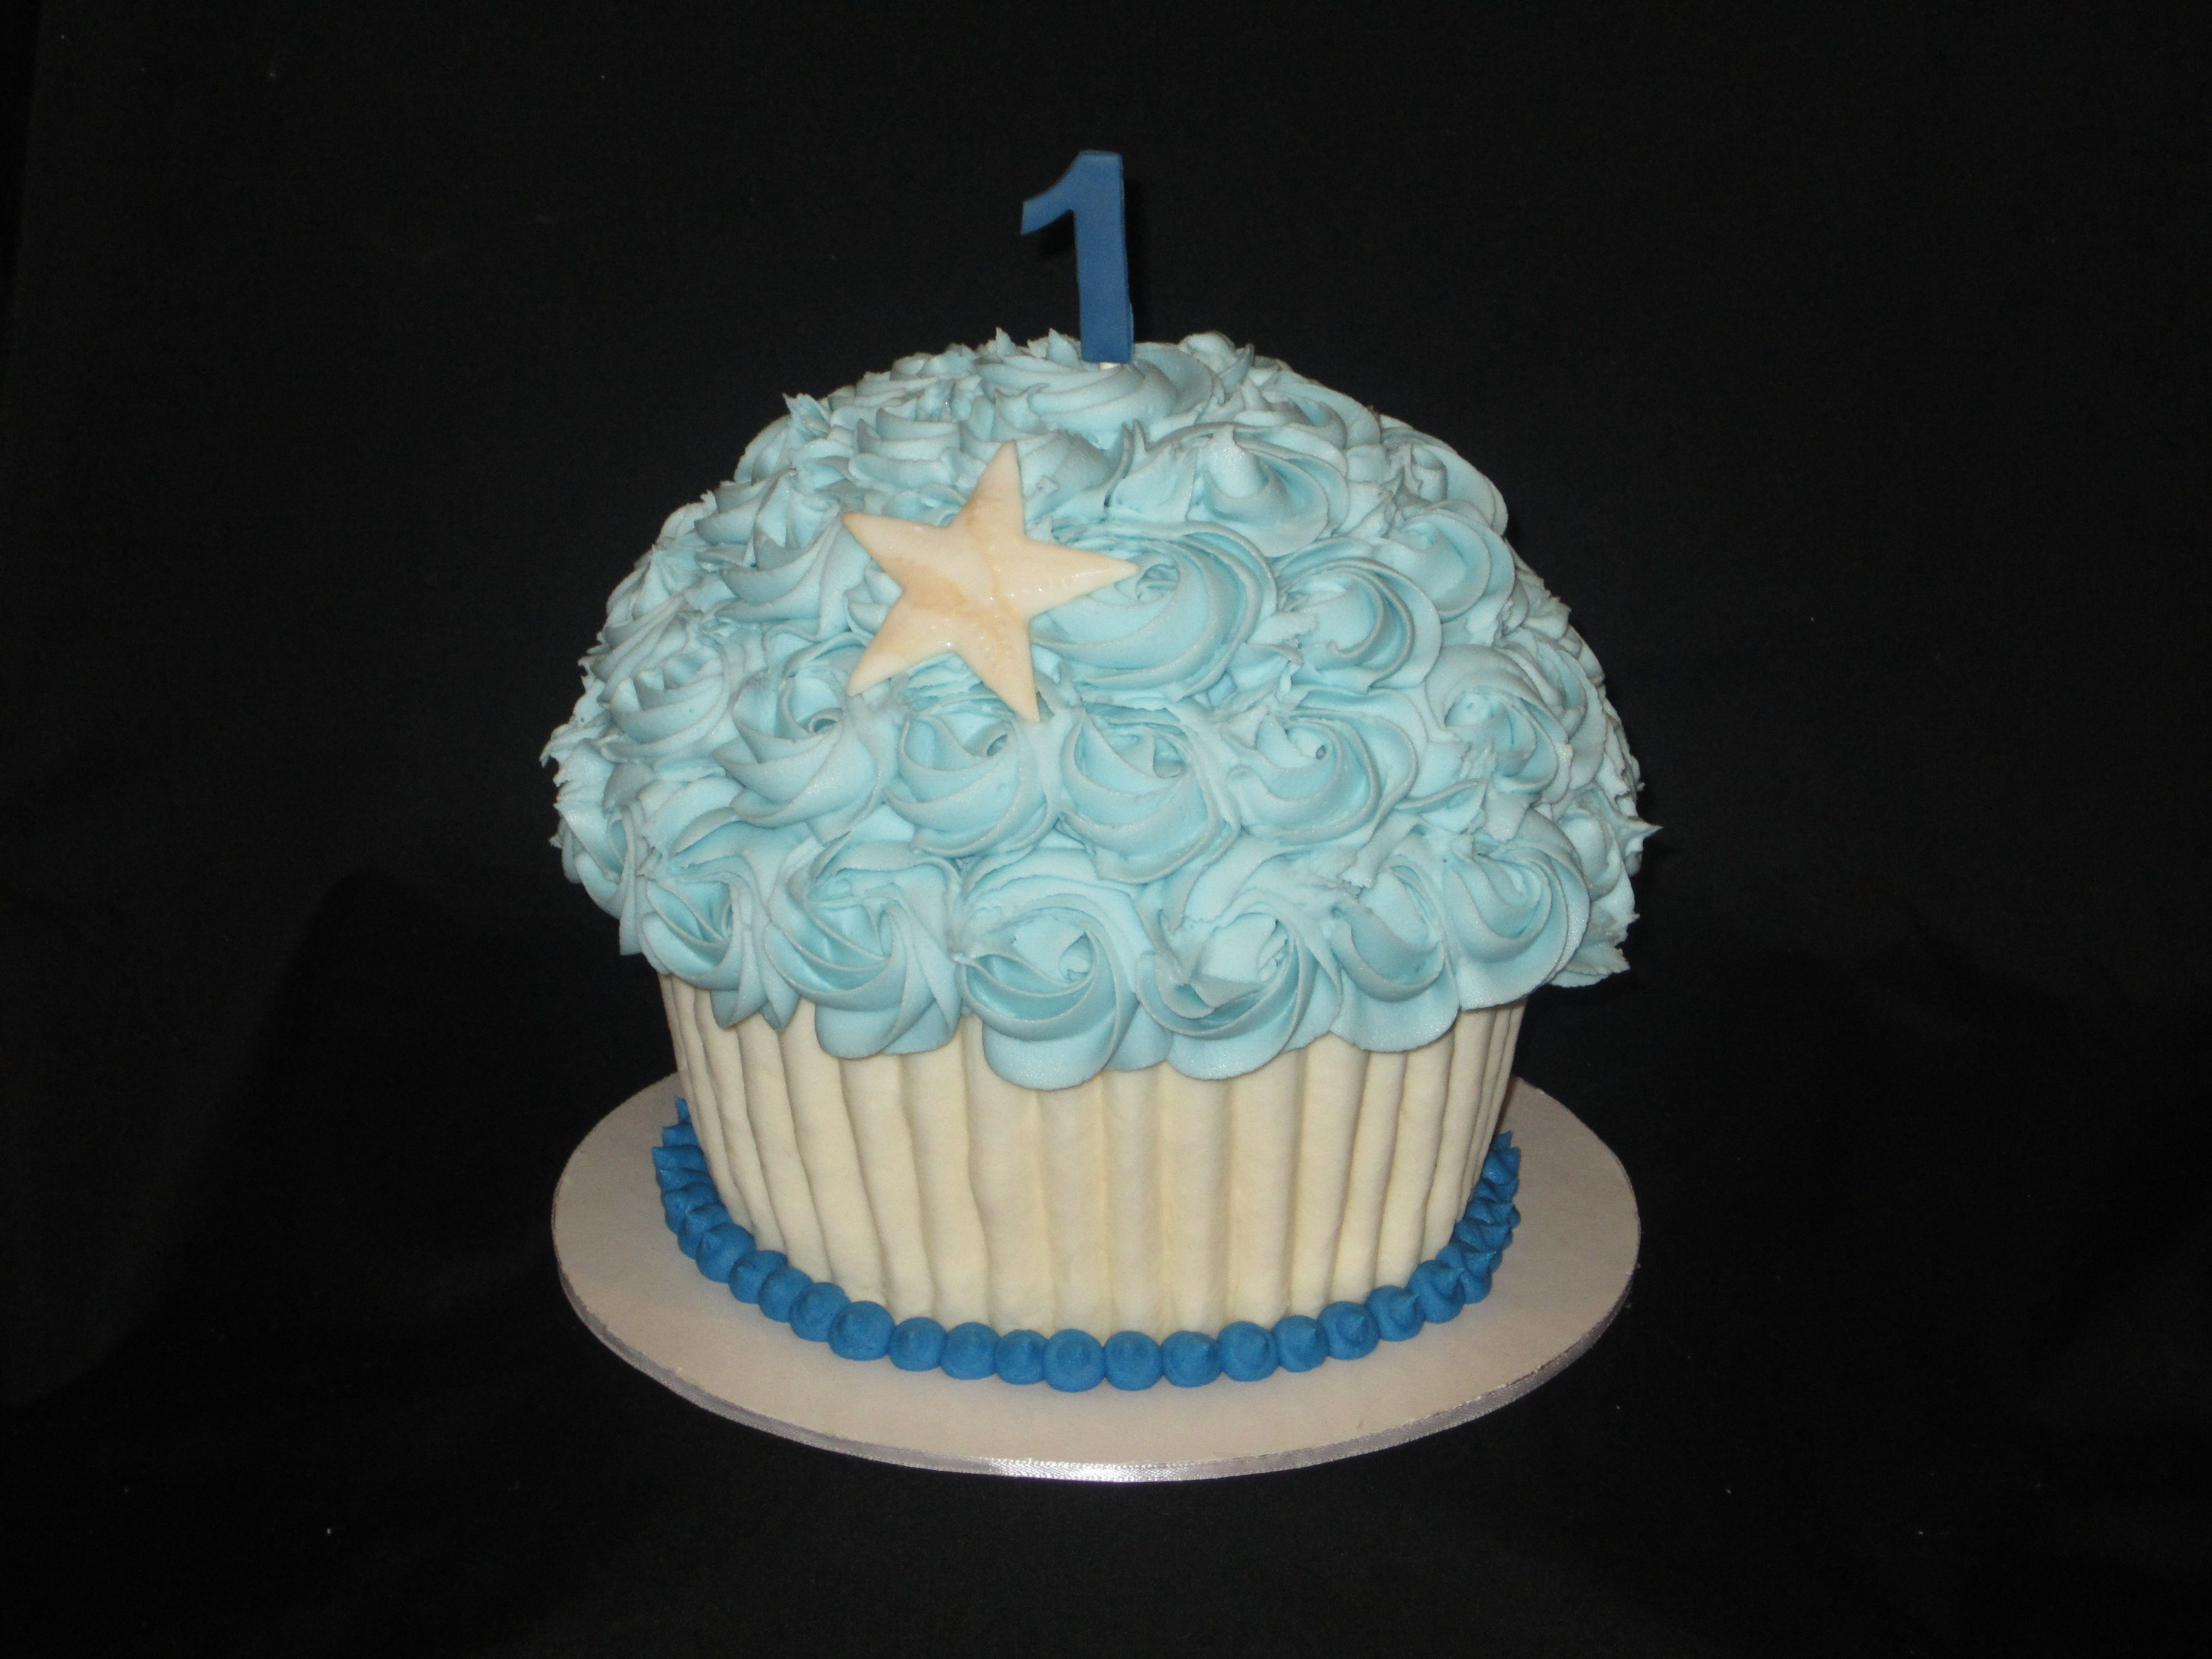 Giant Cupcake smash cake ready to be smashed during a photo session